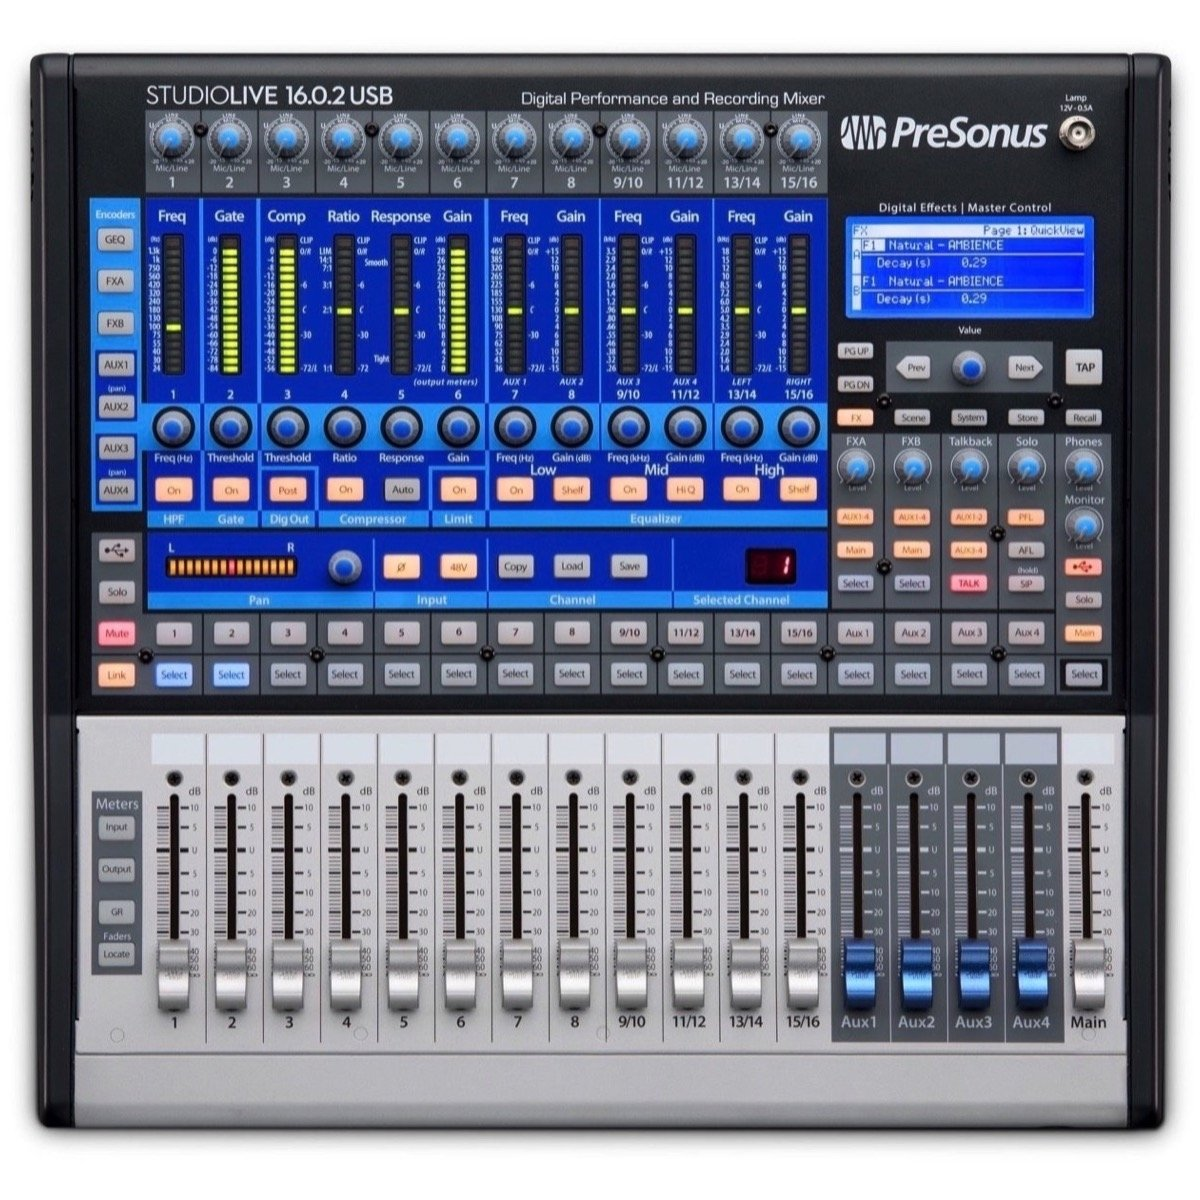 PreSonus StudioLive 16.0.2 USB Digital Mixer, 16-Channel